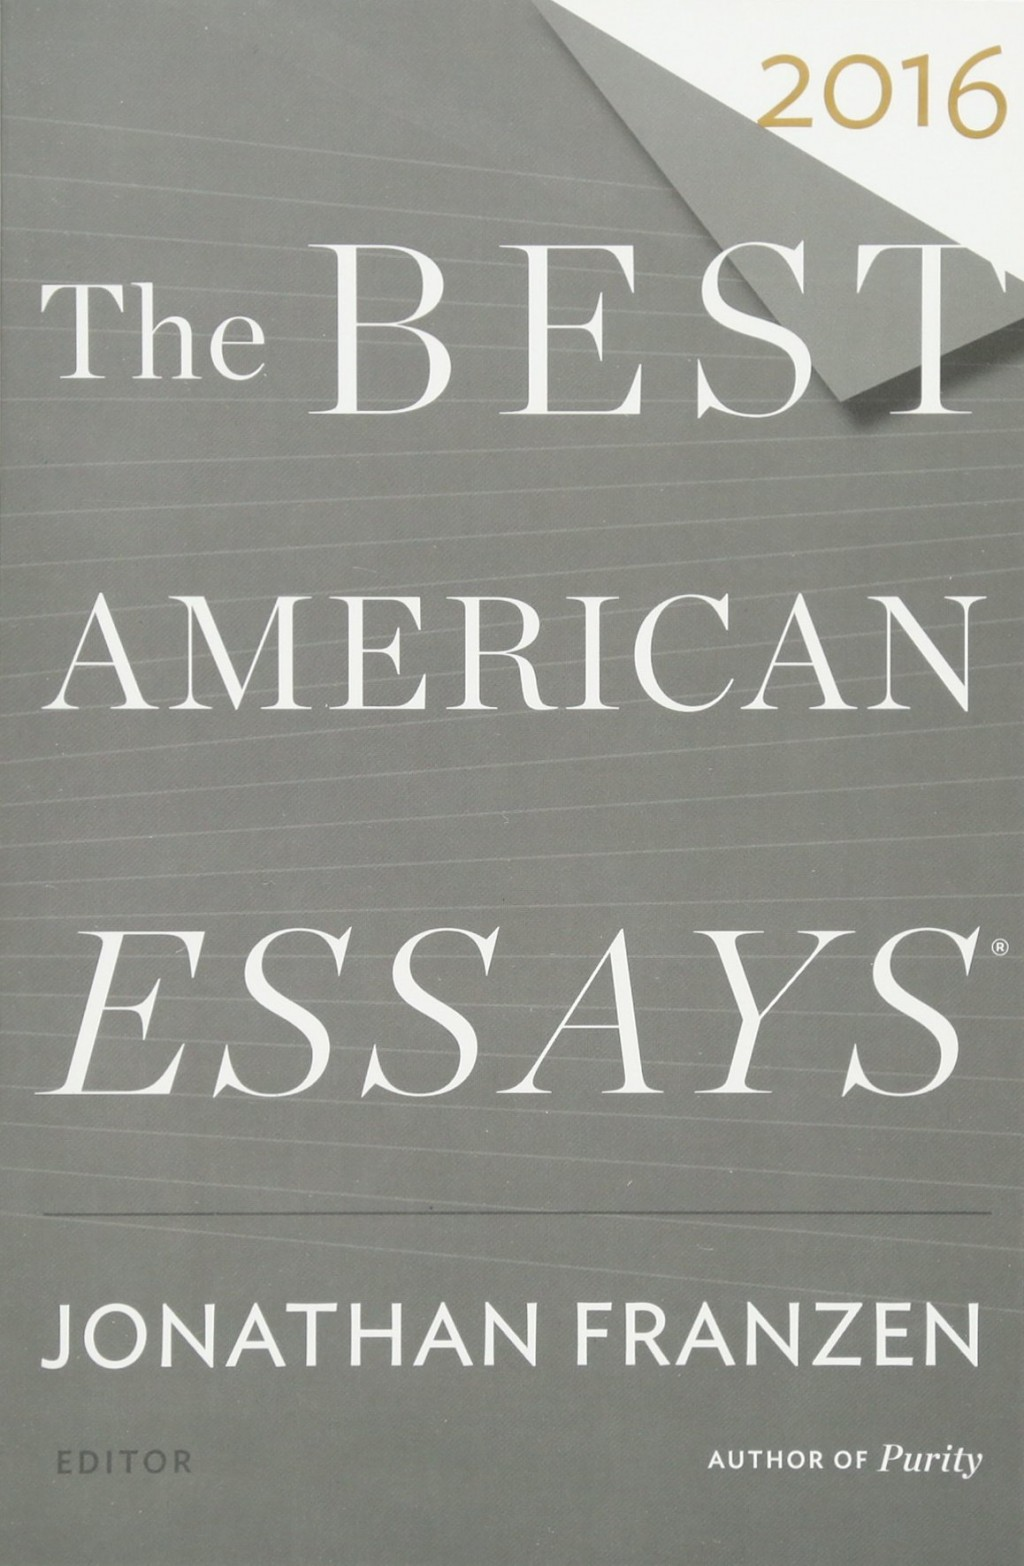 005 The Best American Essays Essay Example Wonderful 2018 Pdf 2017 Table Of Contents 2015 Free Large